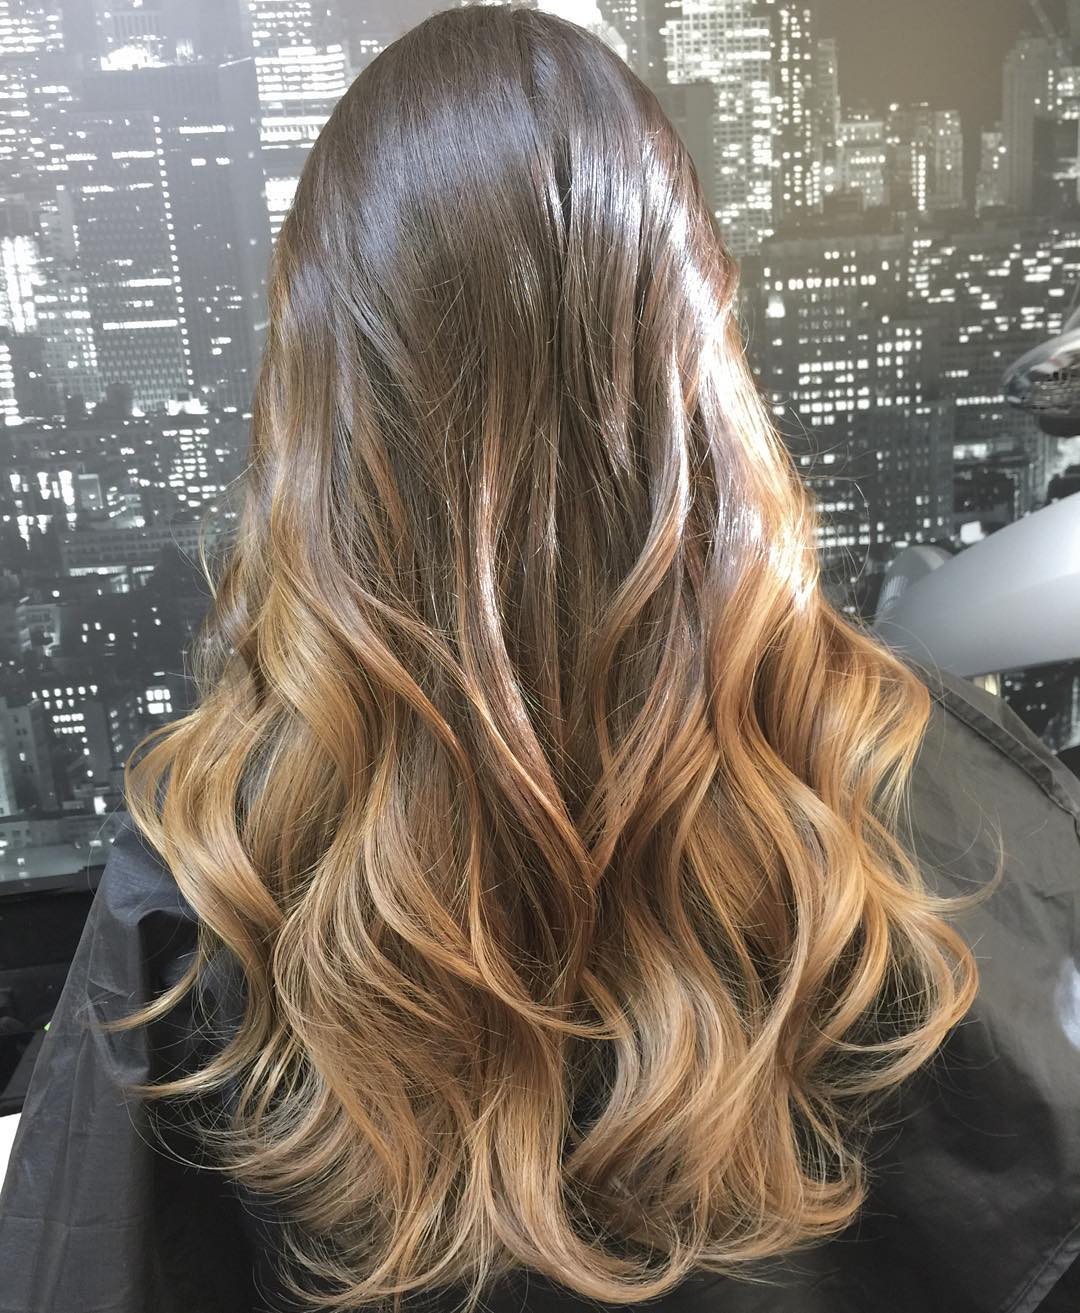 Frisuren Ombre 2015 60 Best Ombre Hair Color Ideas For Blond Brown Red And Black Hair